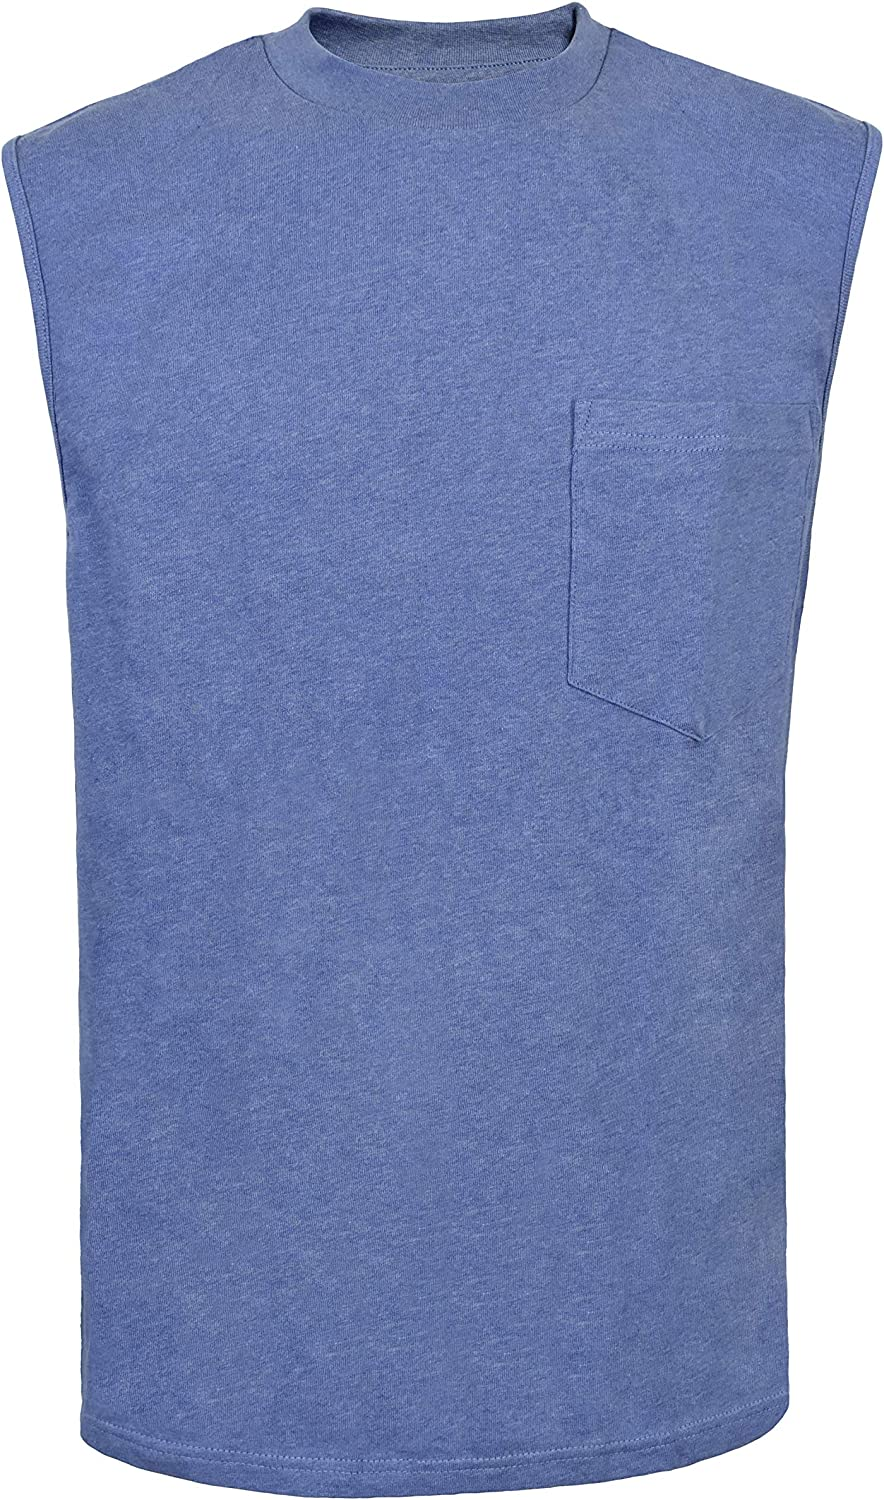 Victory Outfitters Men's Fortified Cotton Extra Length Sleeveless Tee